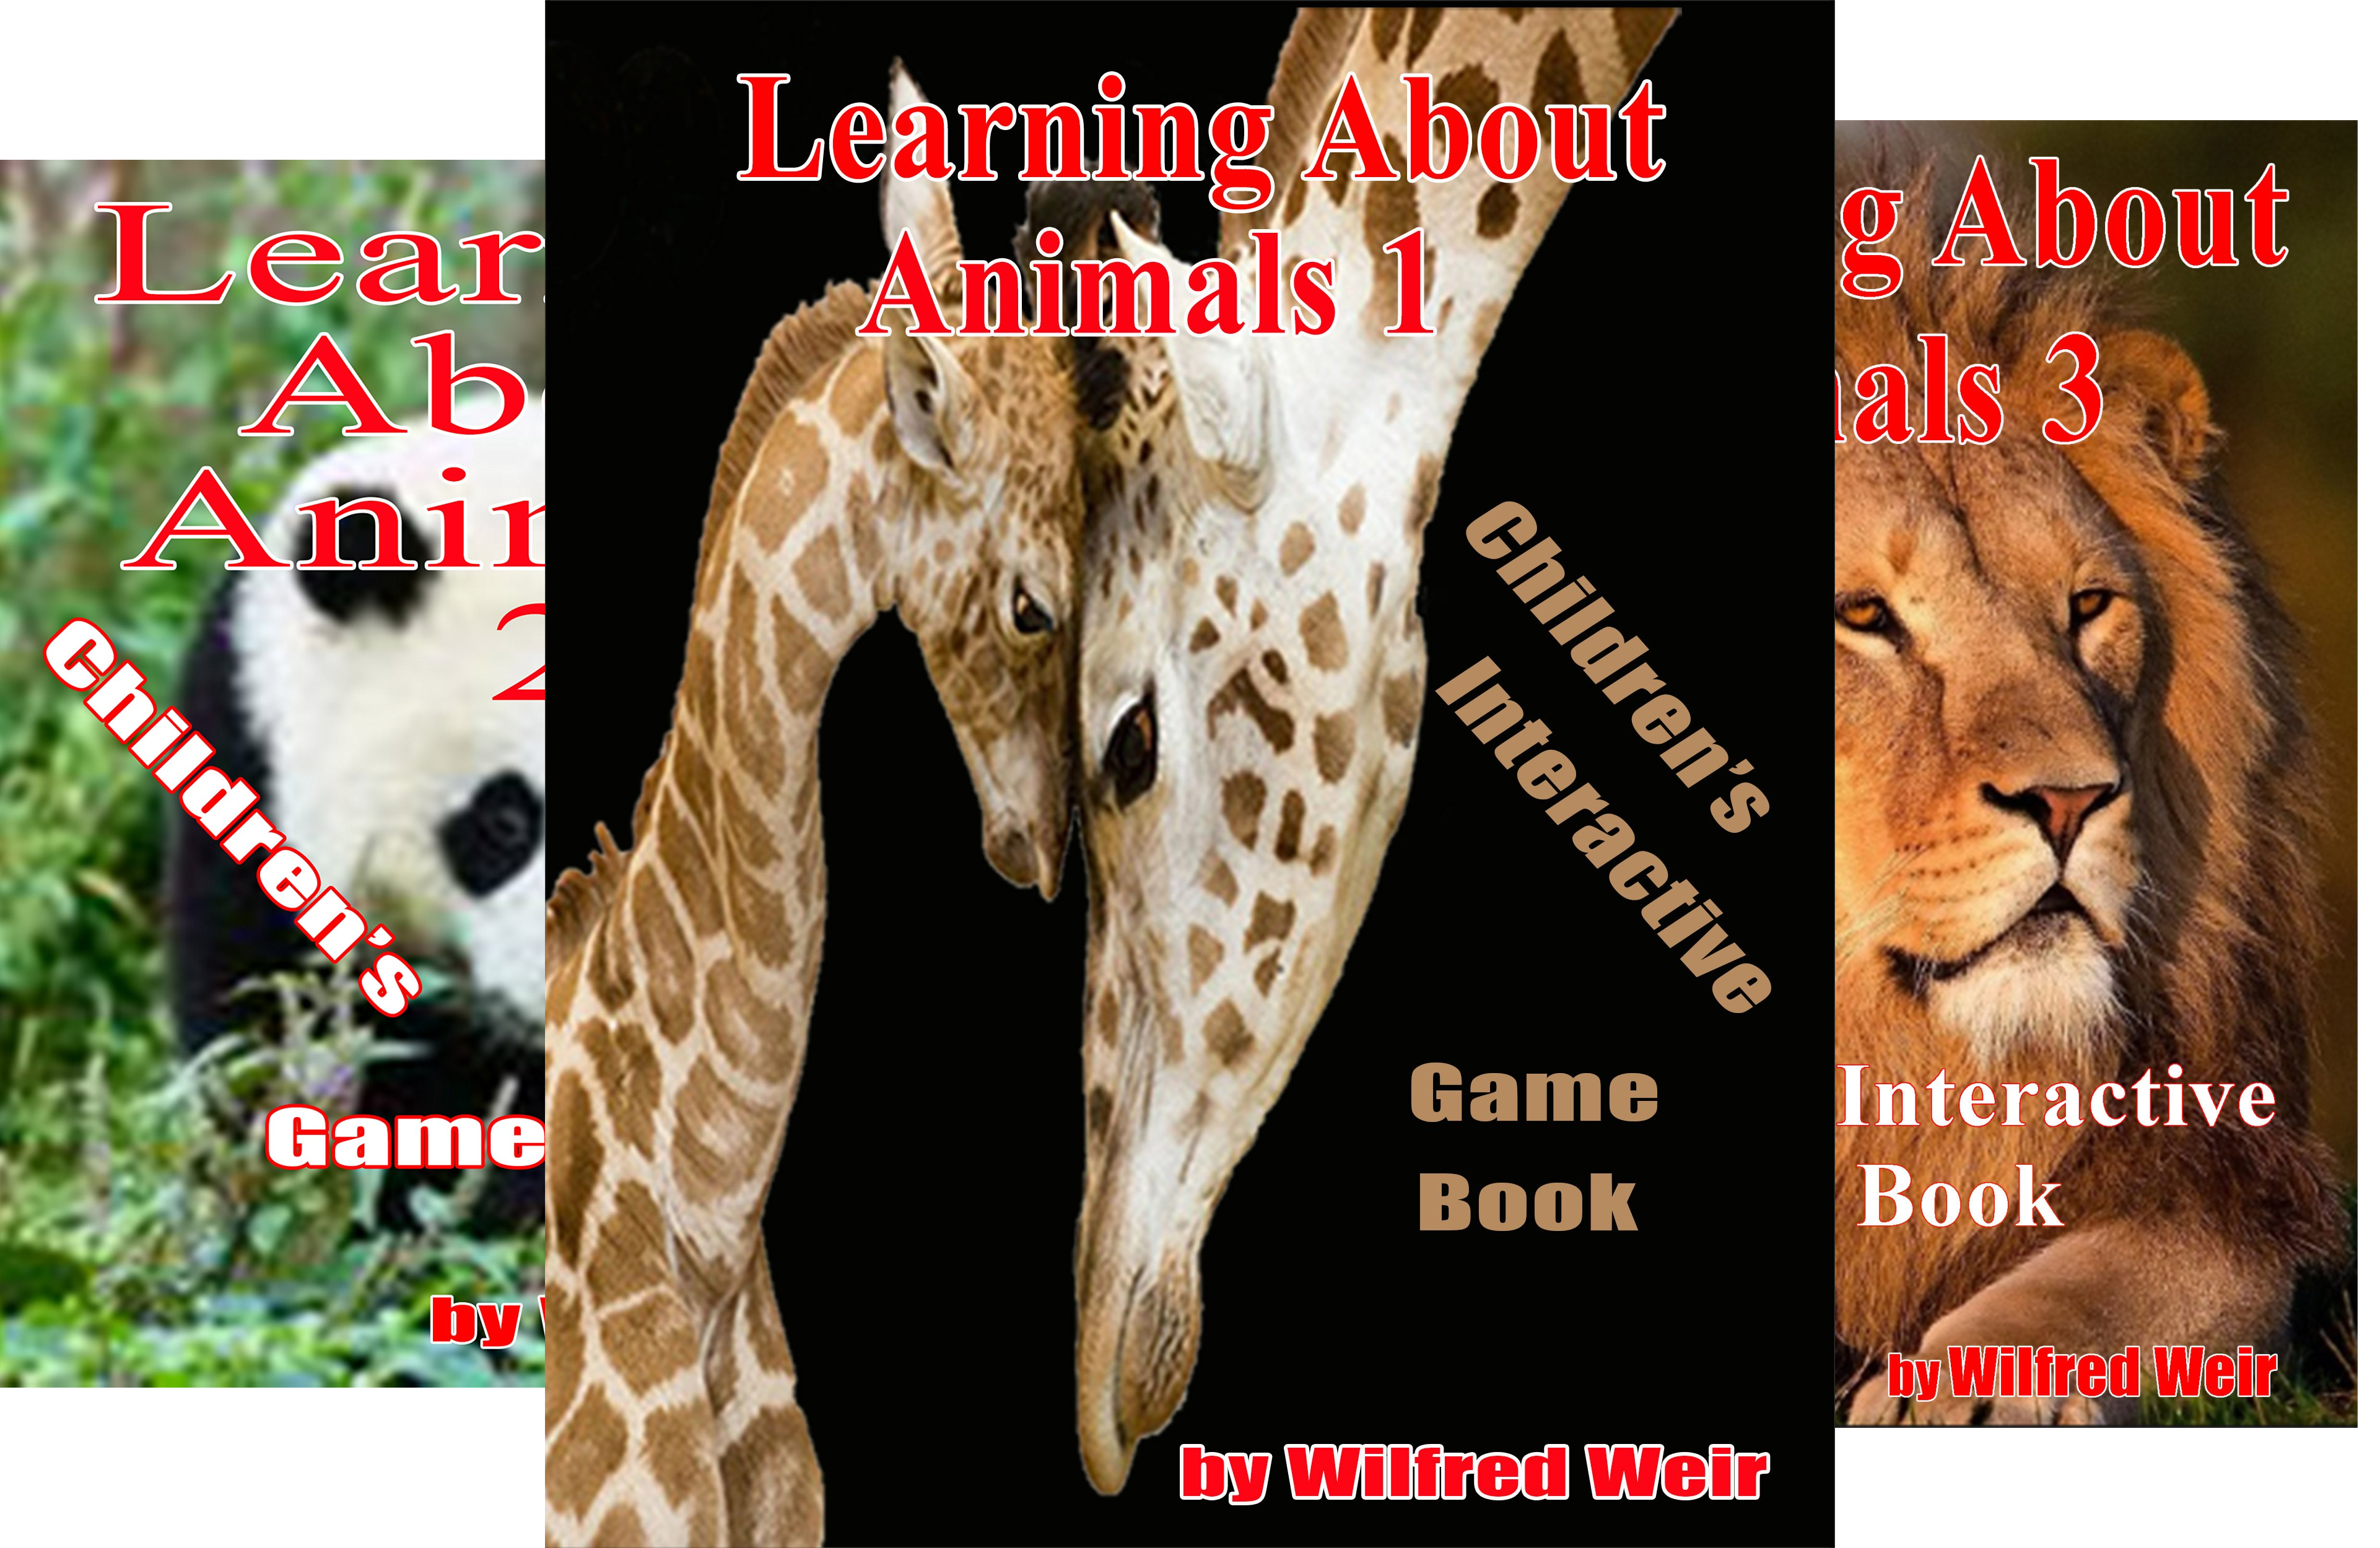 Learning About Animals (3 Book Series)